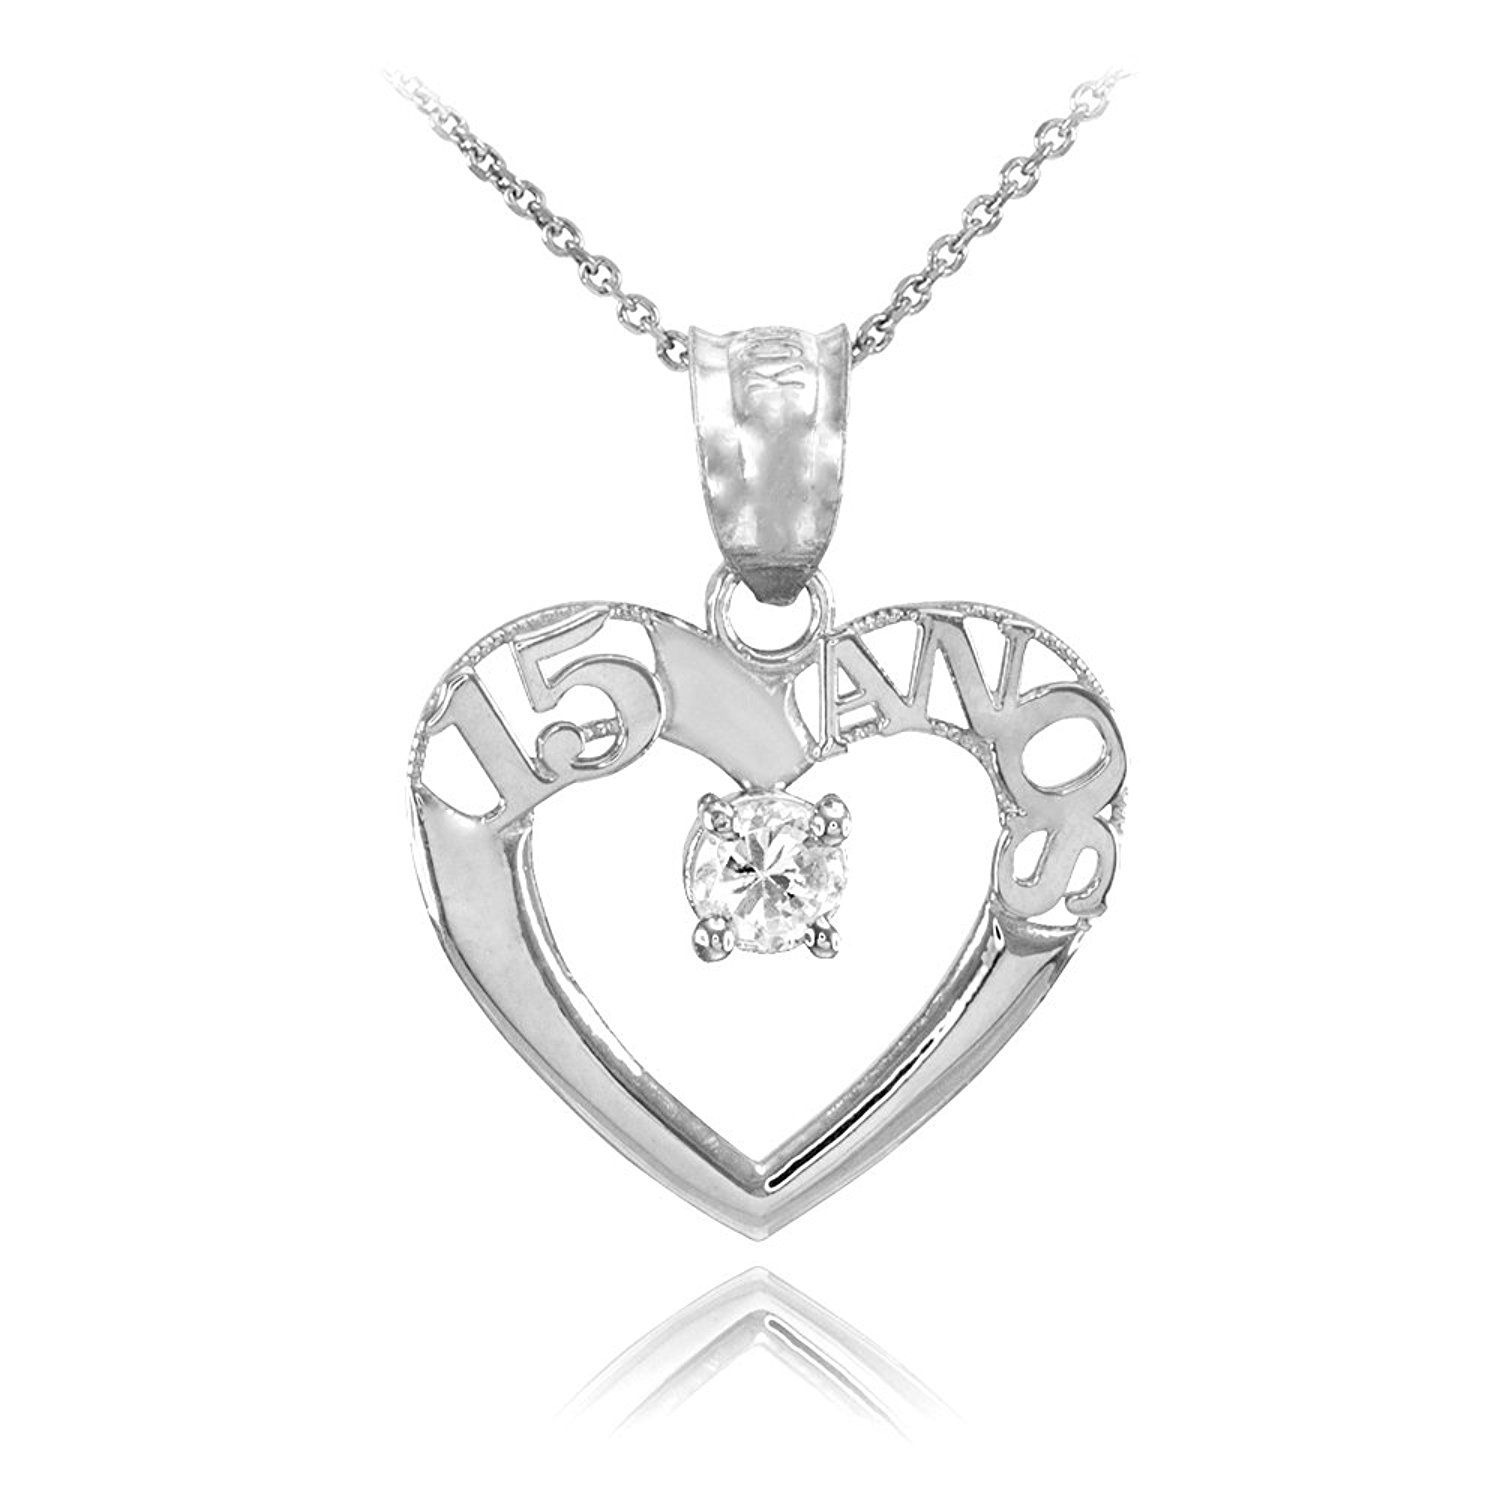 special women nano moms white cool gifts for birthday products cubic jewelry gift stone best presents necklaces sterling zirconia s mom day mother silver necklace